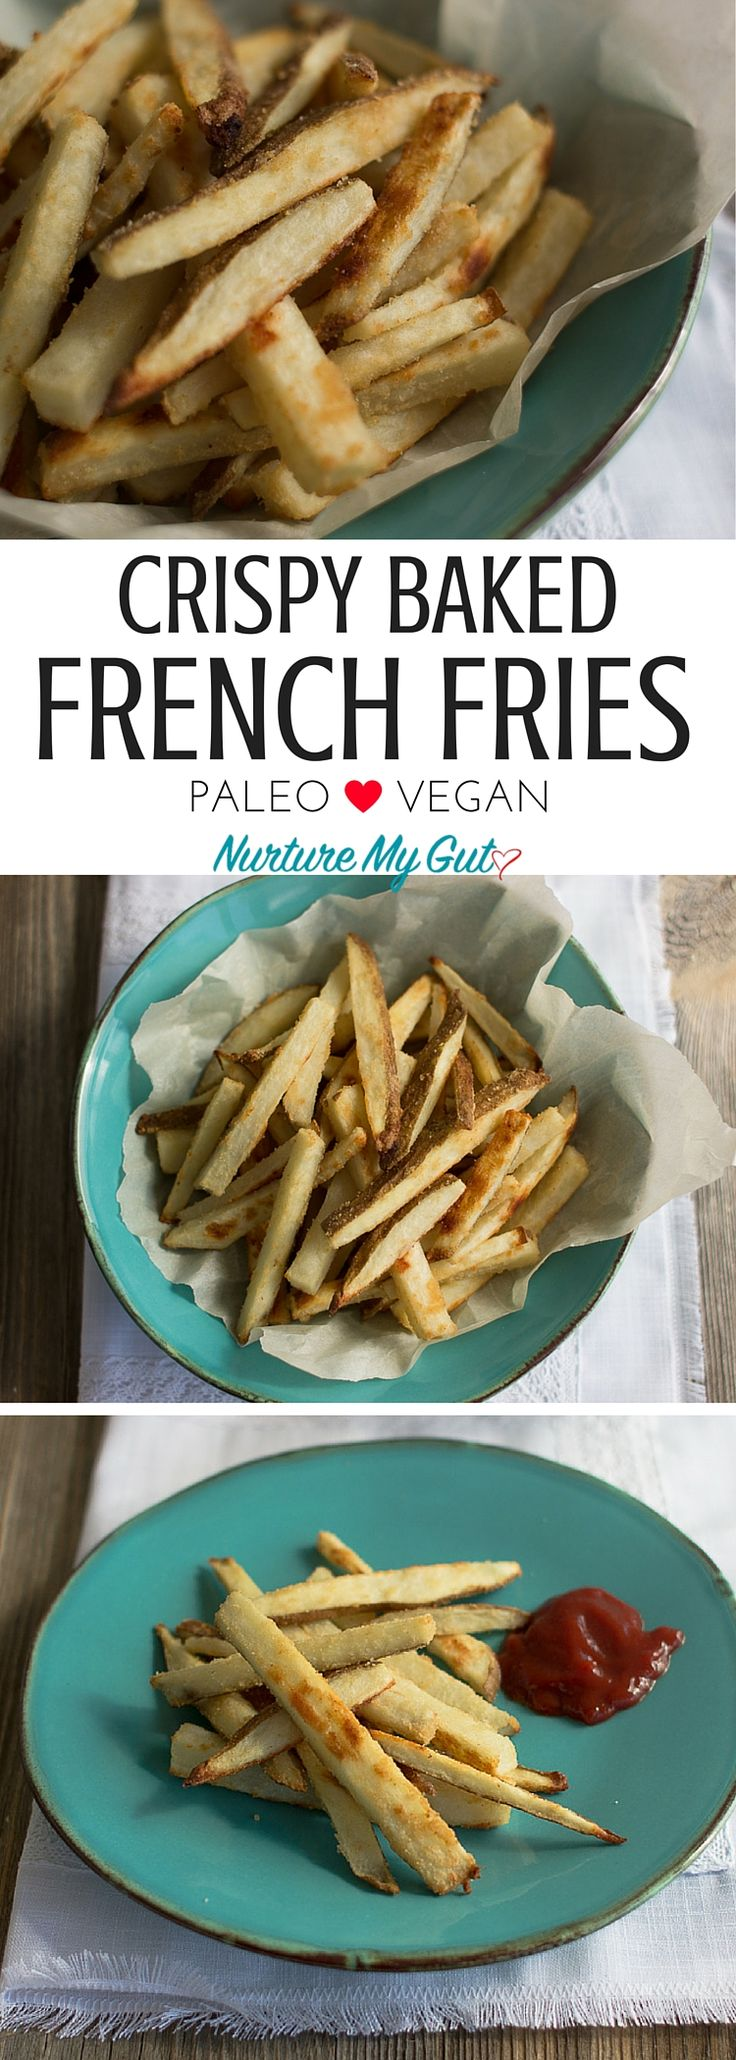 Crispy Baked French Fries. Coated in avocado oil and dusted in coconut flour, onion powder and sea salt. Perfect to satisfy those salty, crispy cravings! Gluten-free, Paleo, Whole30, Vegan.